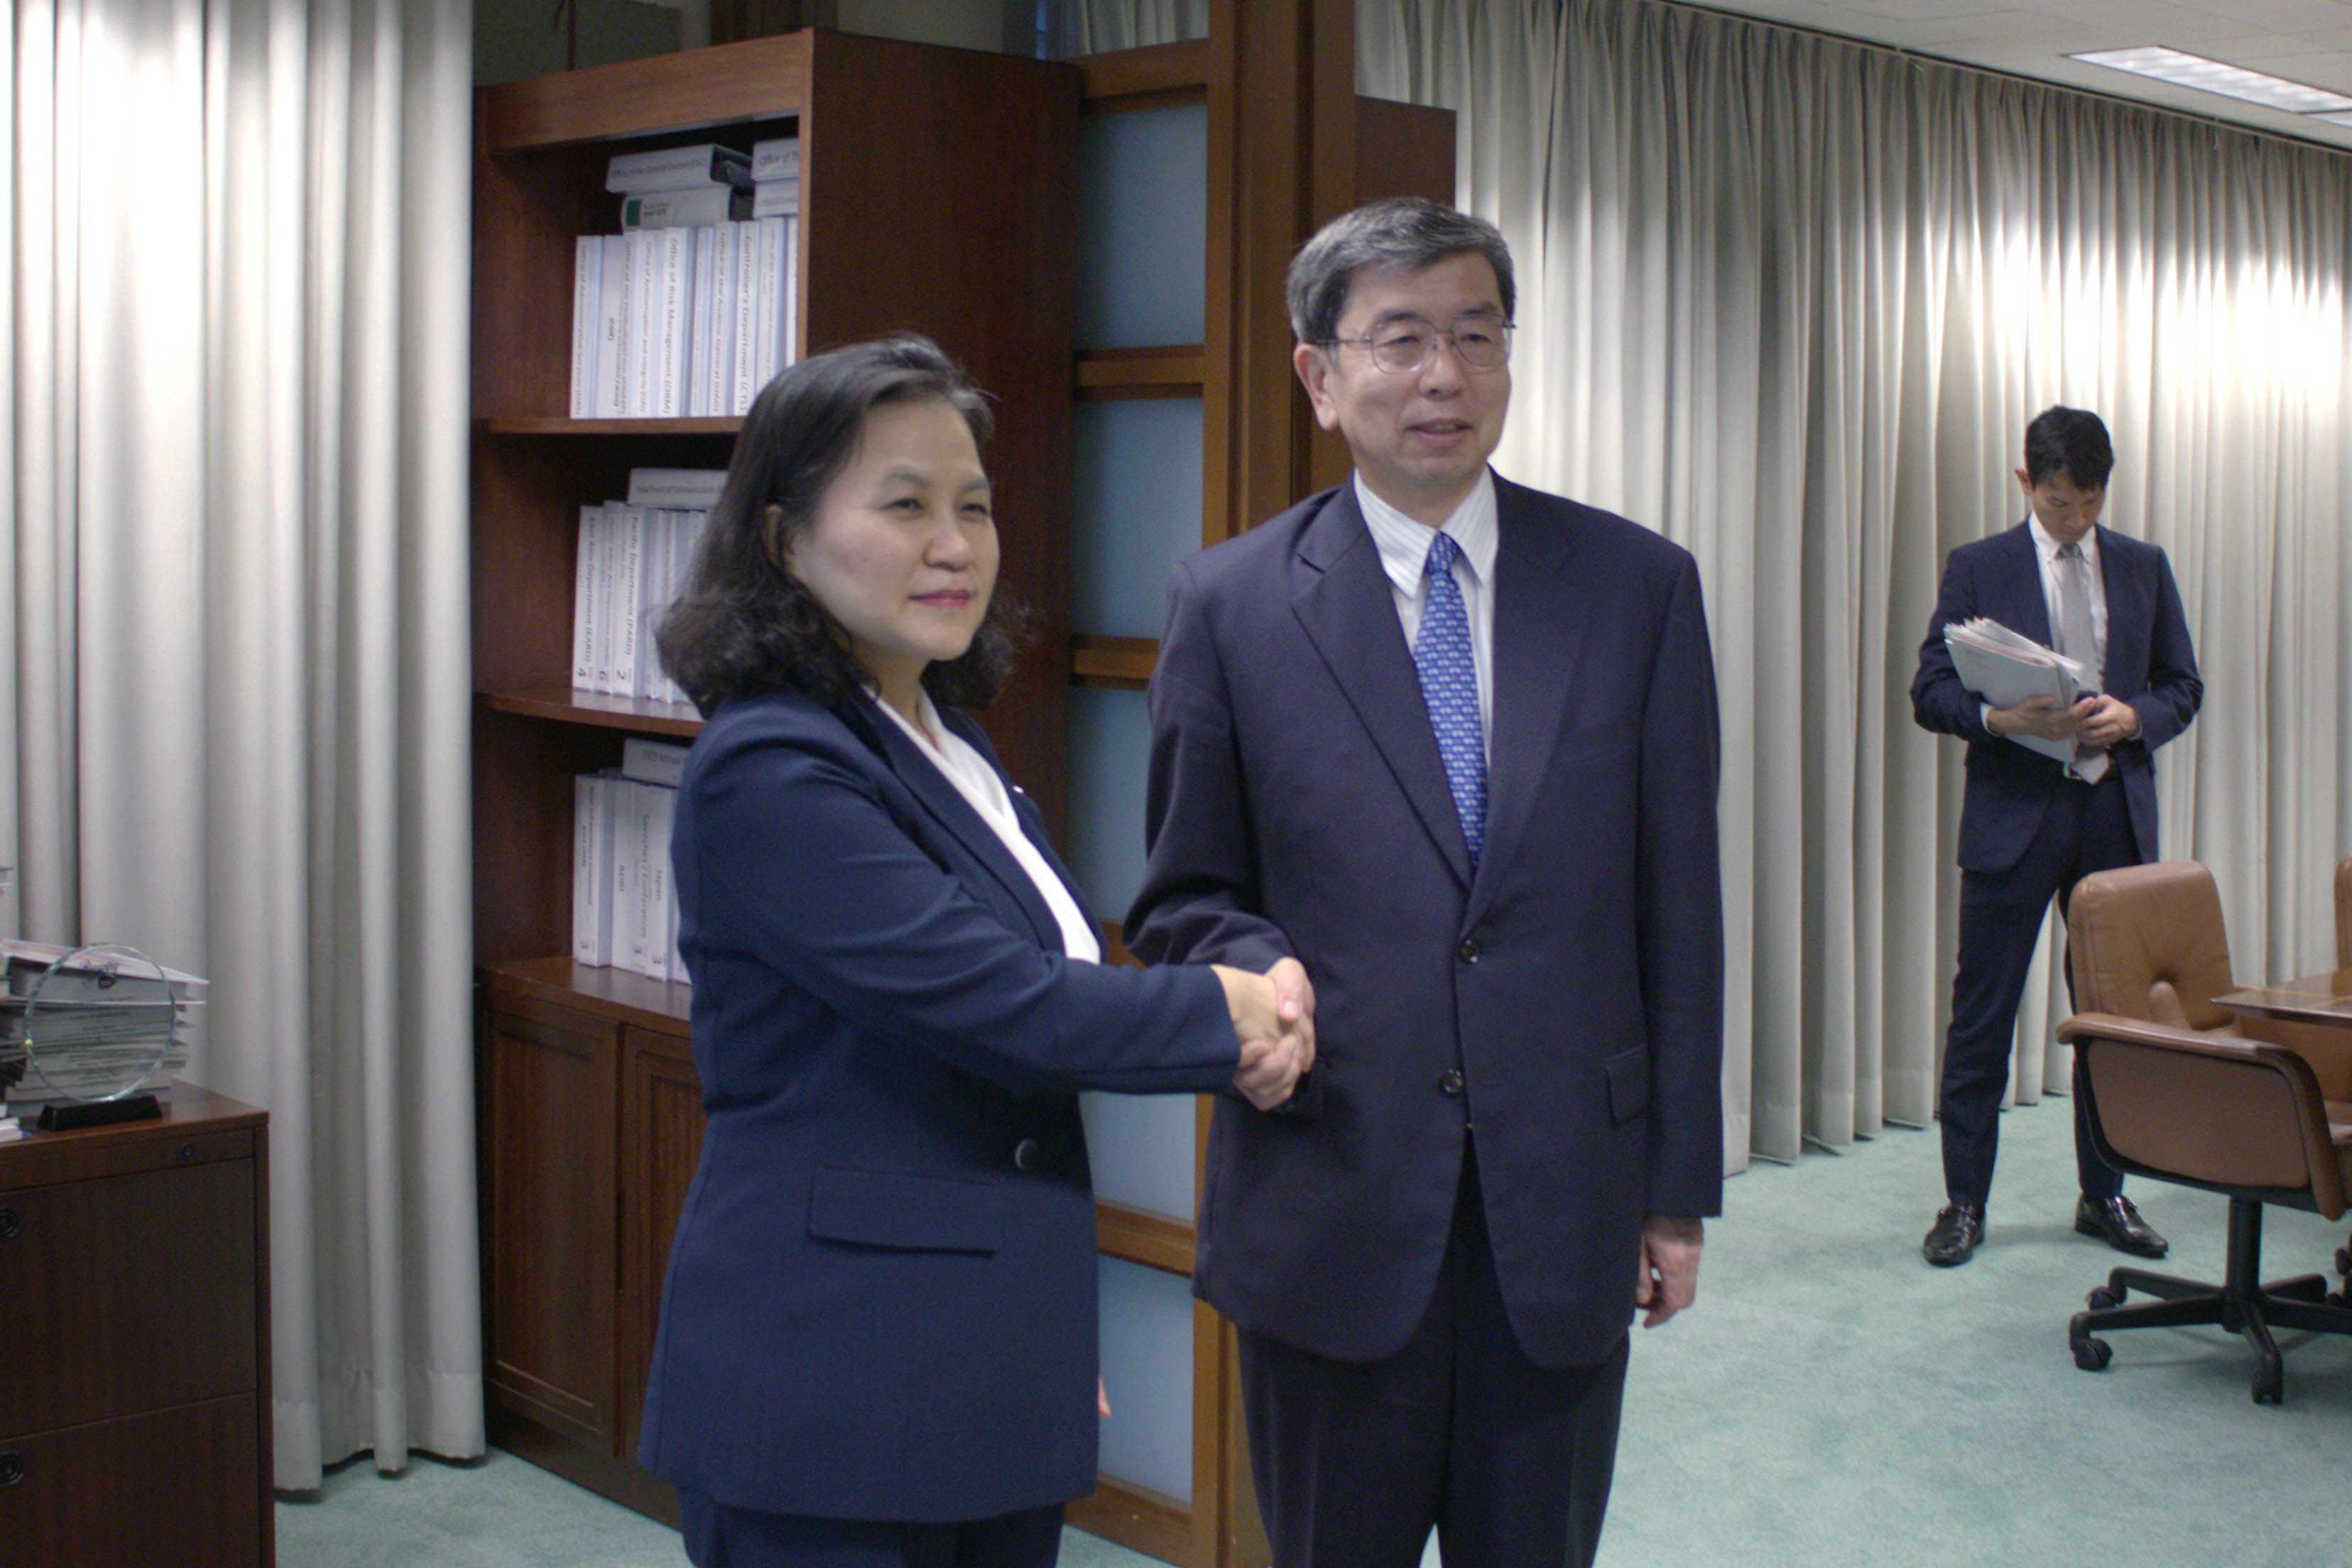 Trade Minister Yoo meets with ADB President Nakao in Manila